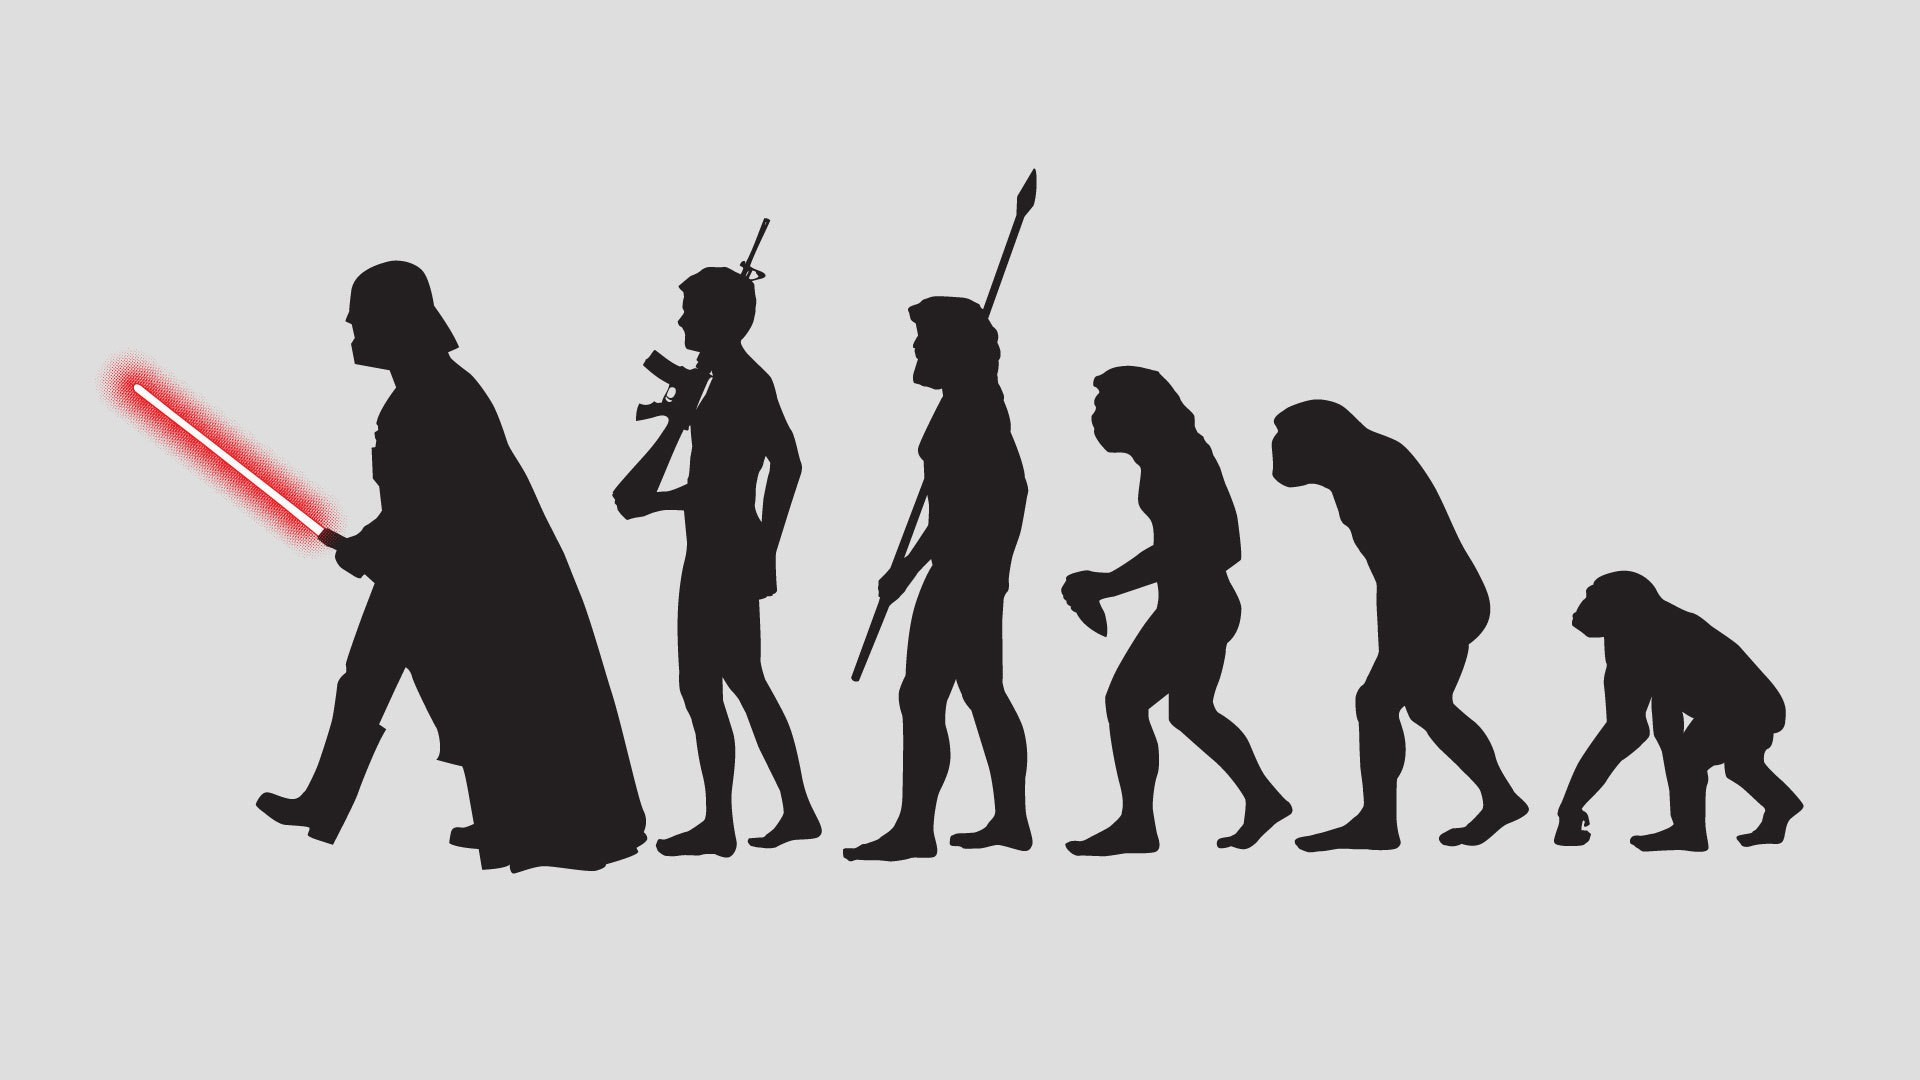 Star_Wars-Darth_Vader-wallpaper-evolution